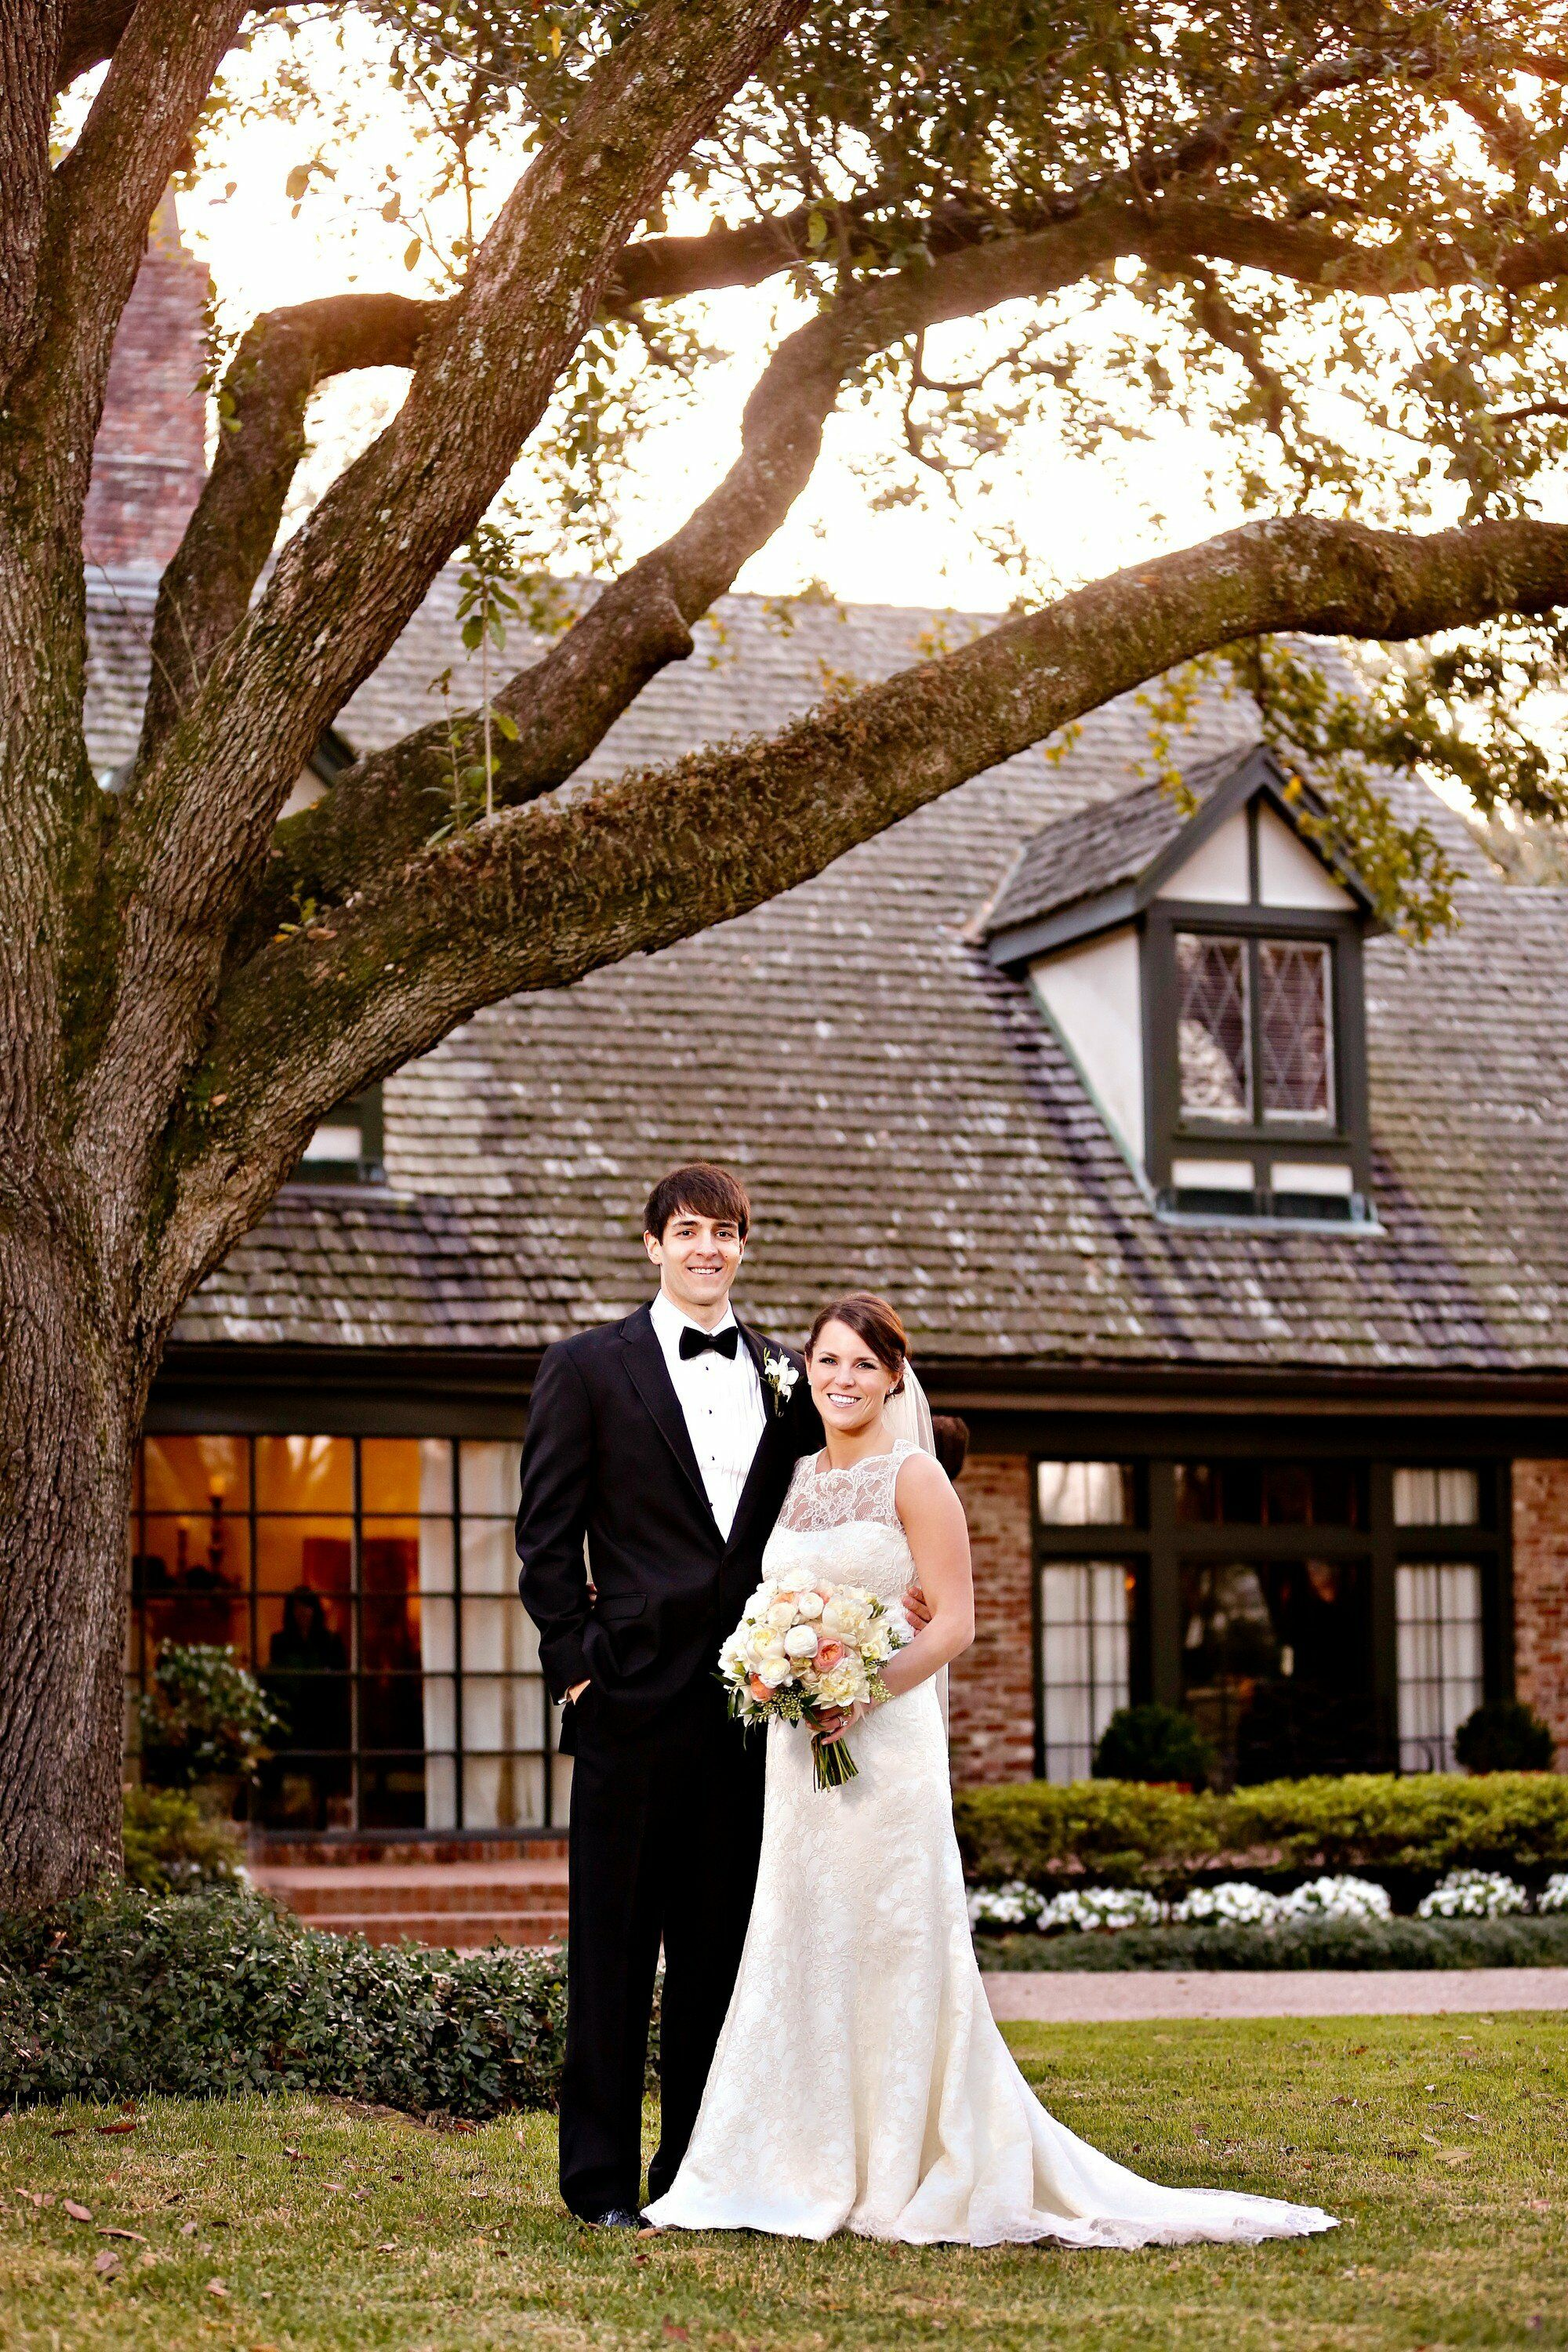 A Vintage Inspired Outdoor Wedding In Baton Rouge